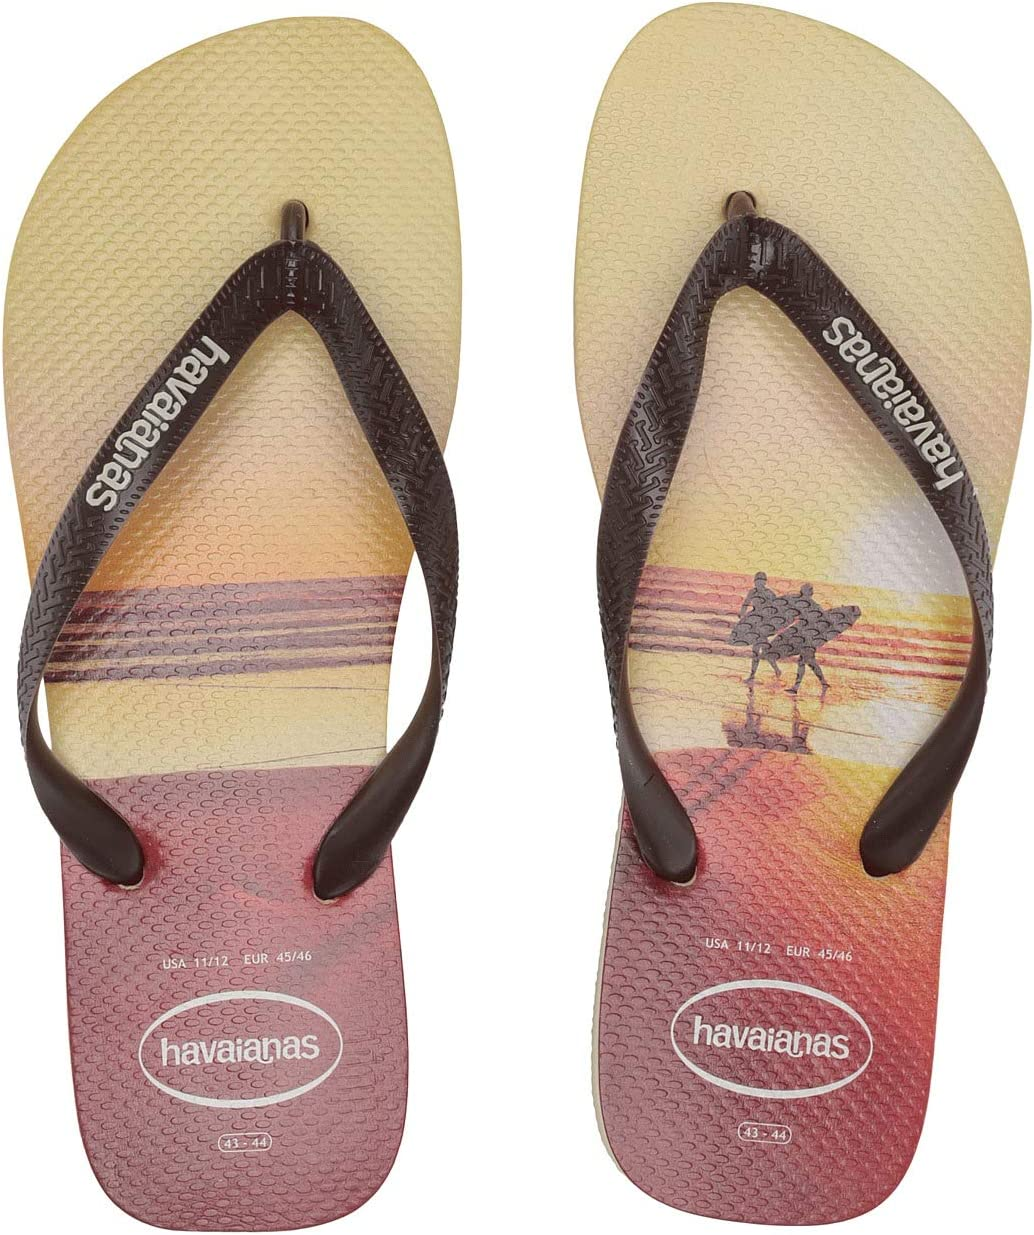 1a60c362c Havaianas Shoes   Accessories